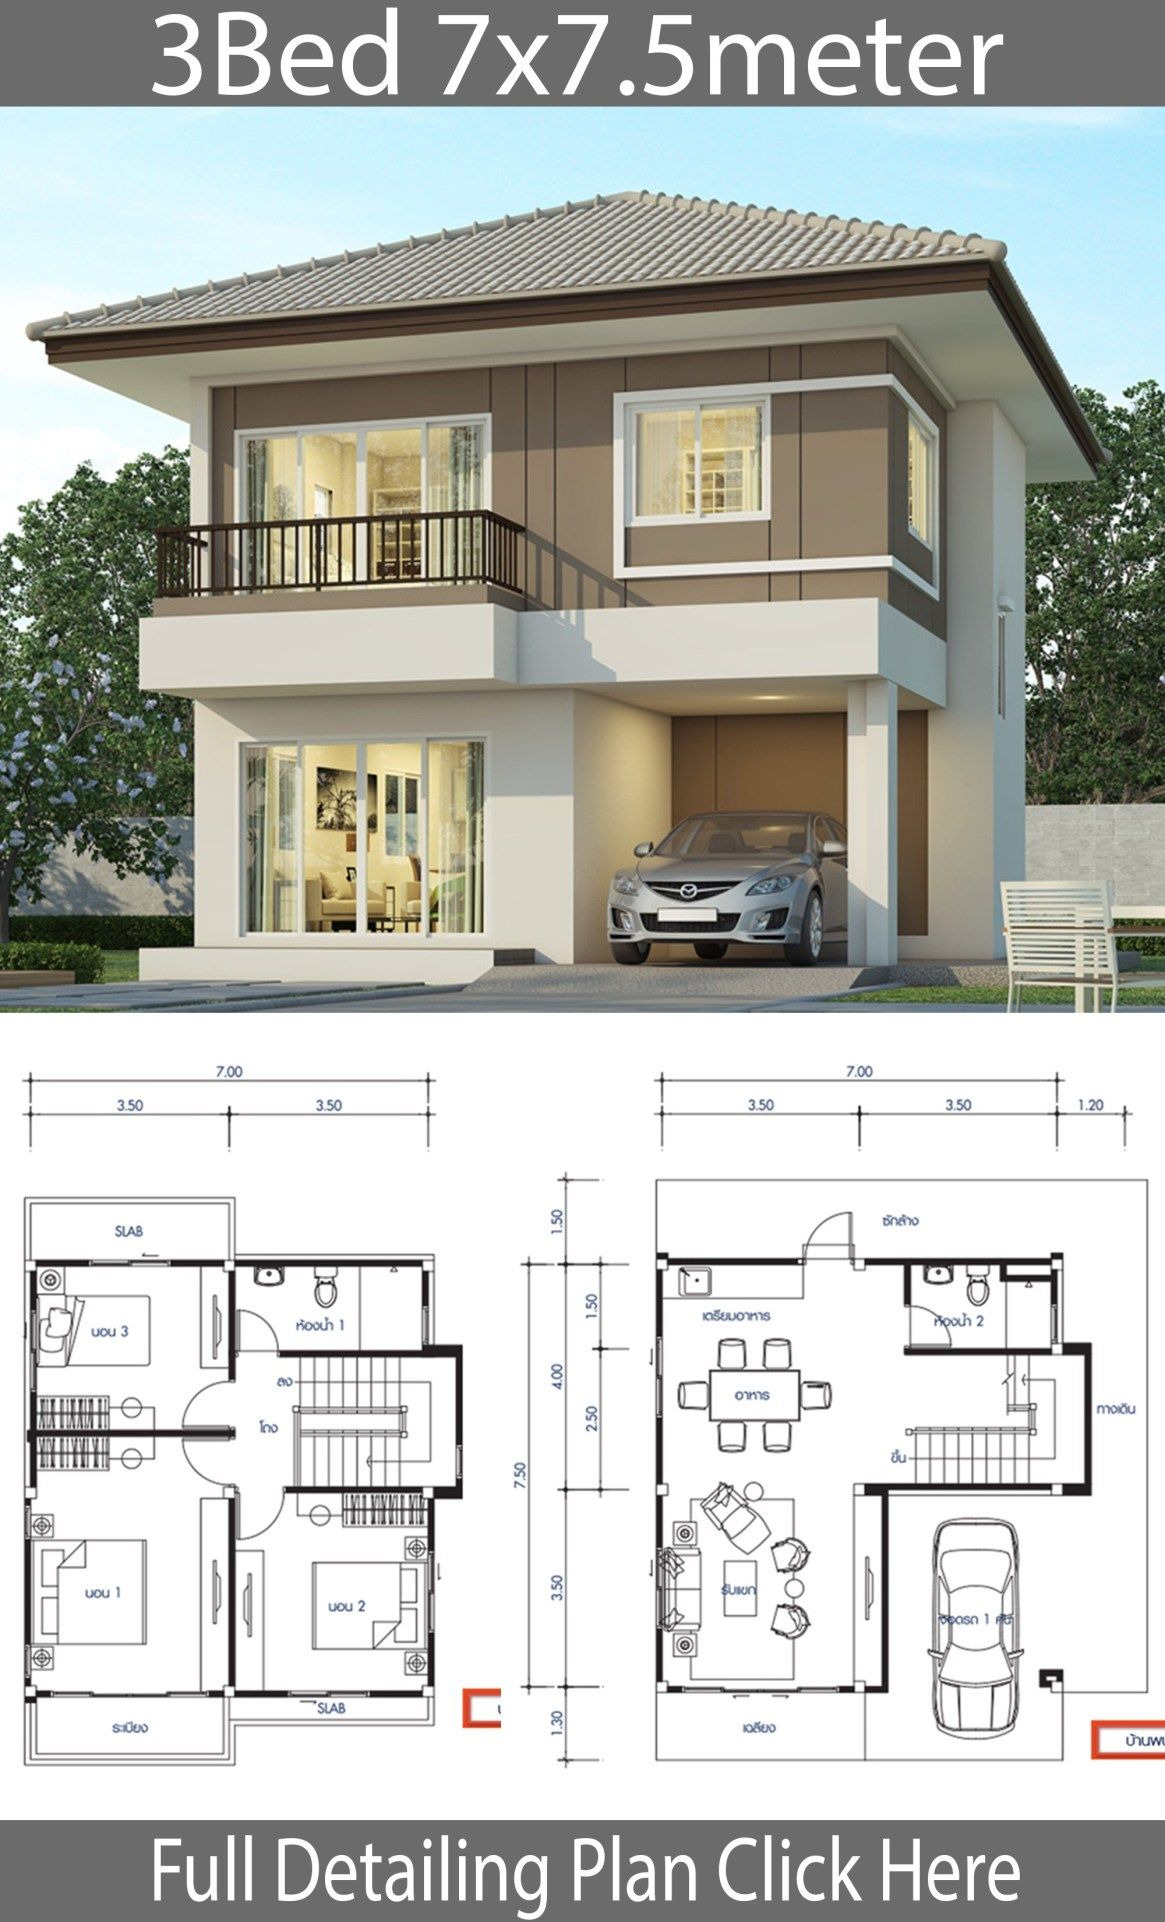 Simple 7 Bedroom House Plans Lovely House Design Plan 7x7 5m with 3 Bedrooms